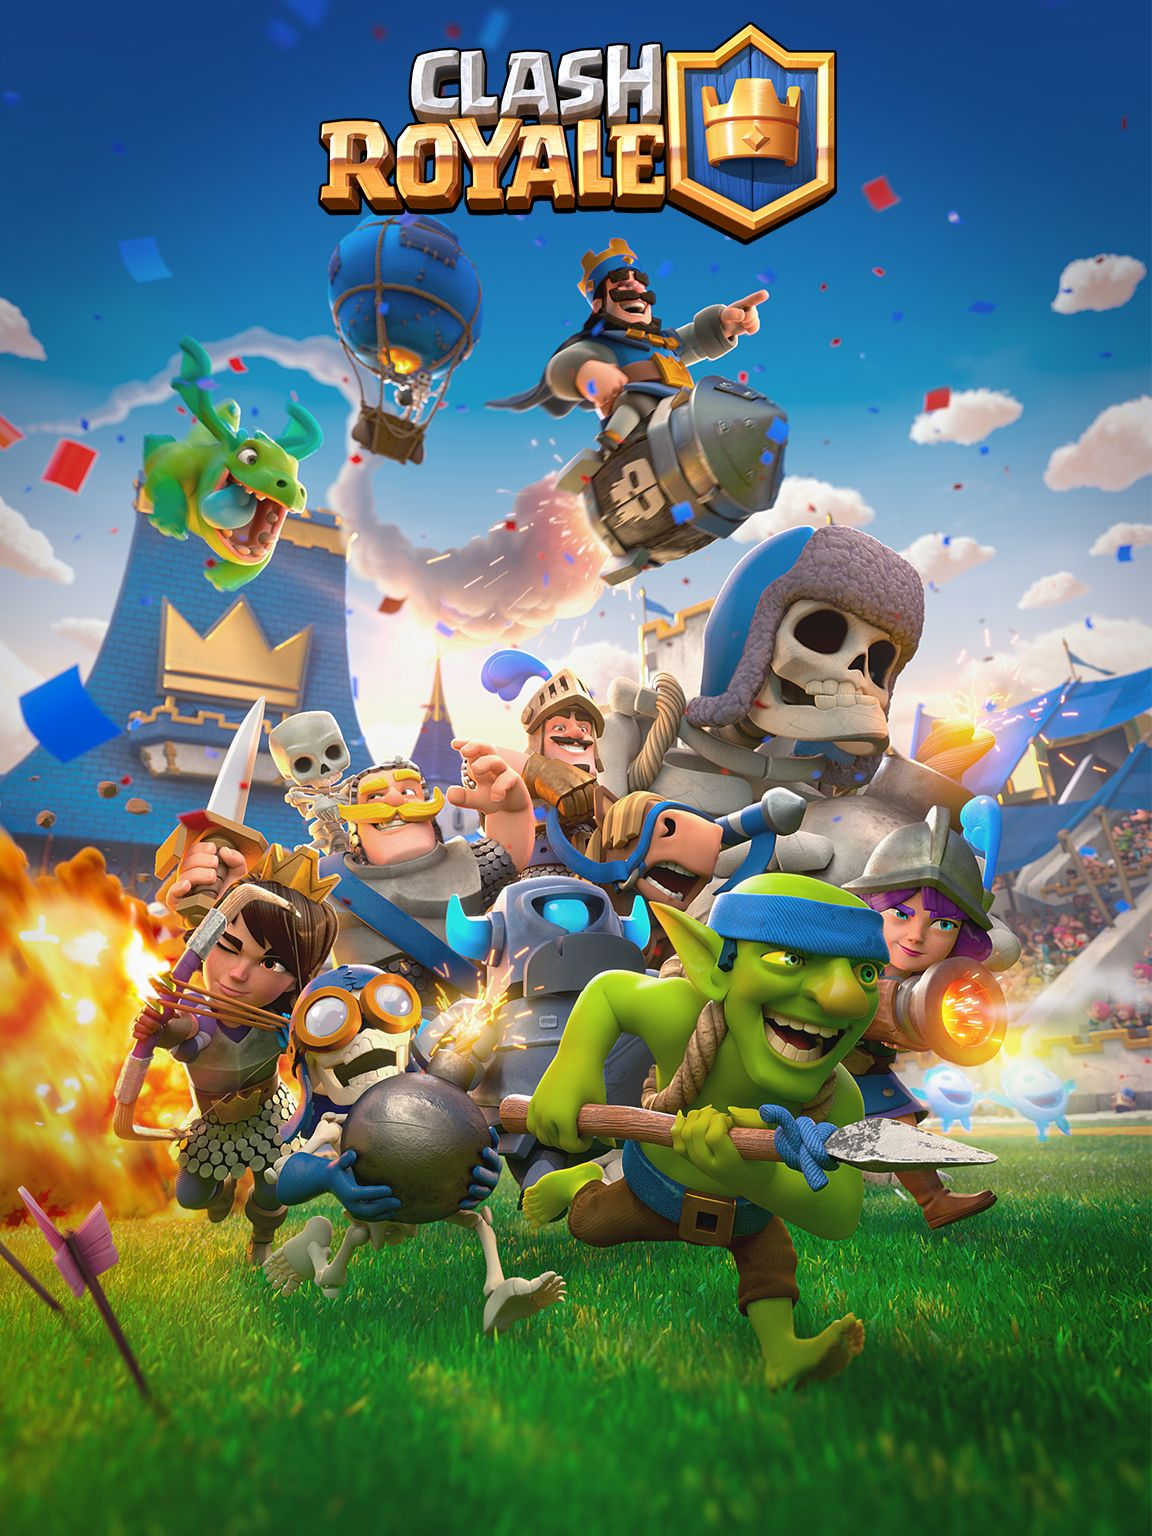 For Media Supercell In Clash Royale Clash Royale Wallpaper Clash Royale Personajes